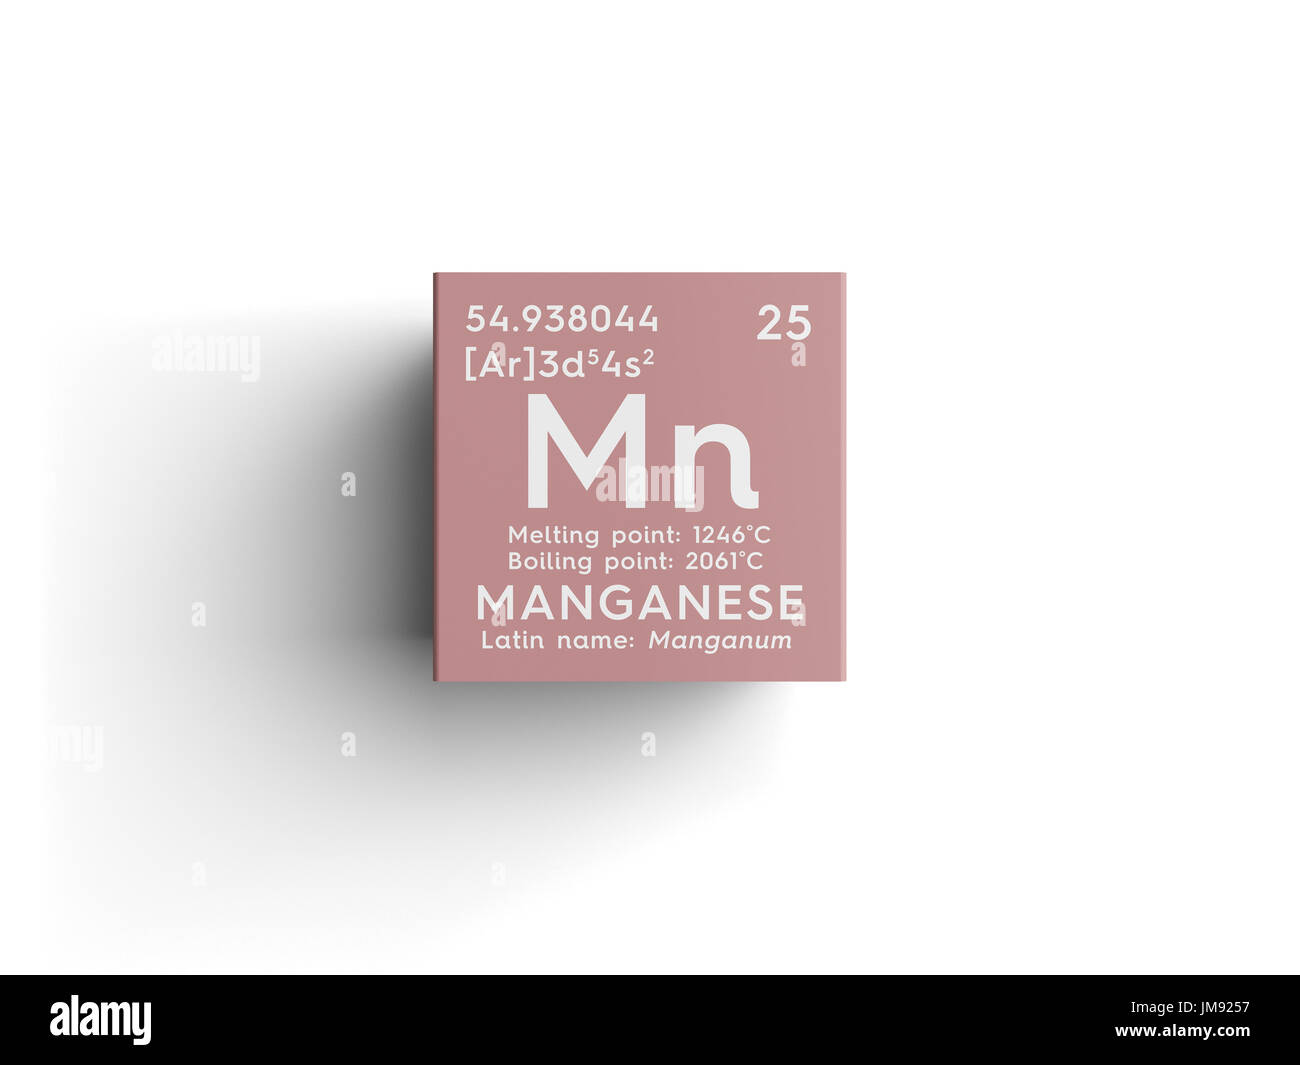 Manganese chemical element stock photos manganese chemical manganese manganum transition metals chemical element of mendeleevs periodic table manganese in gamestrikefo Images